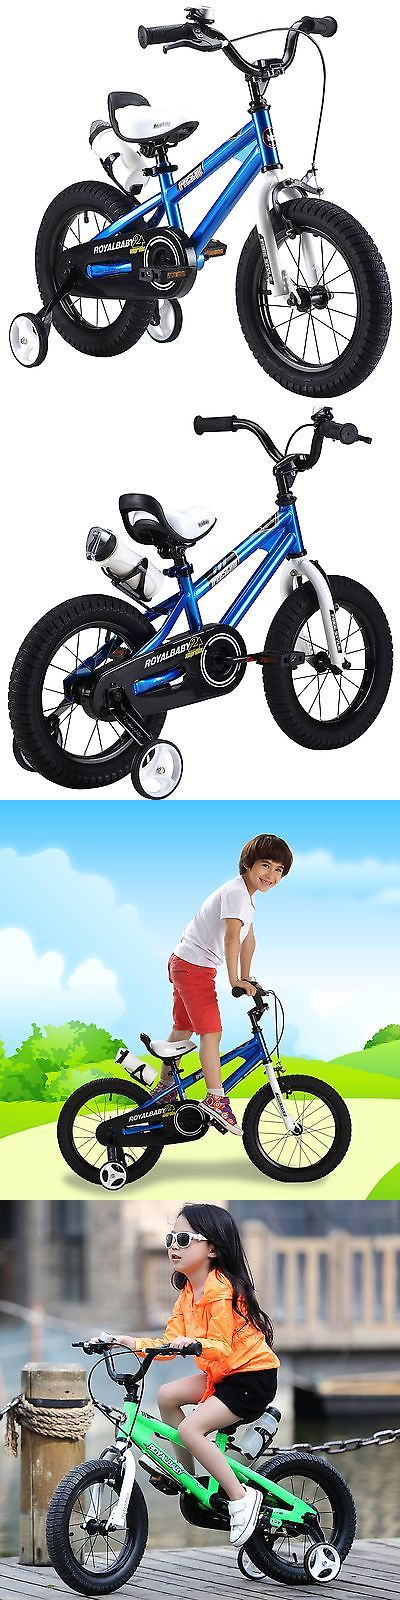 Training Wheels 177839: Royalbaby Bmx Freestyle Kids Bikes 12 Inch 14 Inch 16 Inch Avaliable Boys Bi... BUY IT NOW ONLY: $164.99